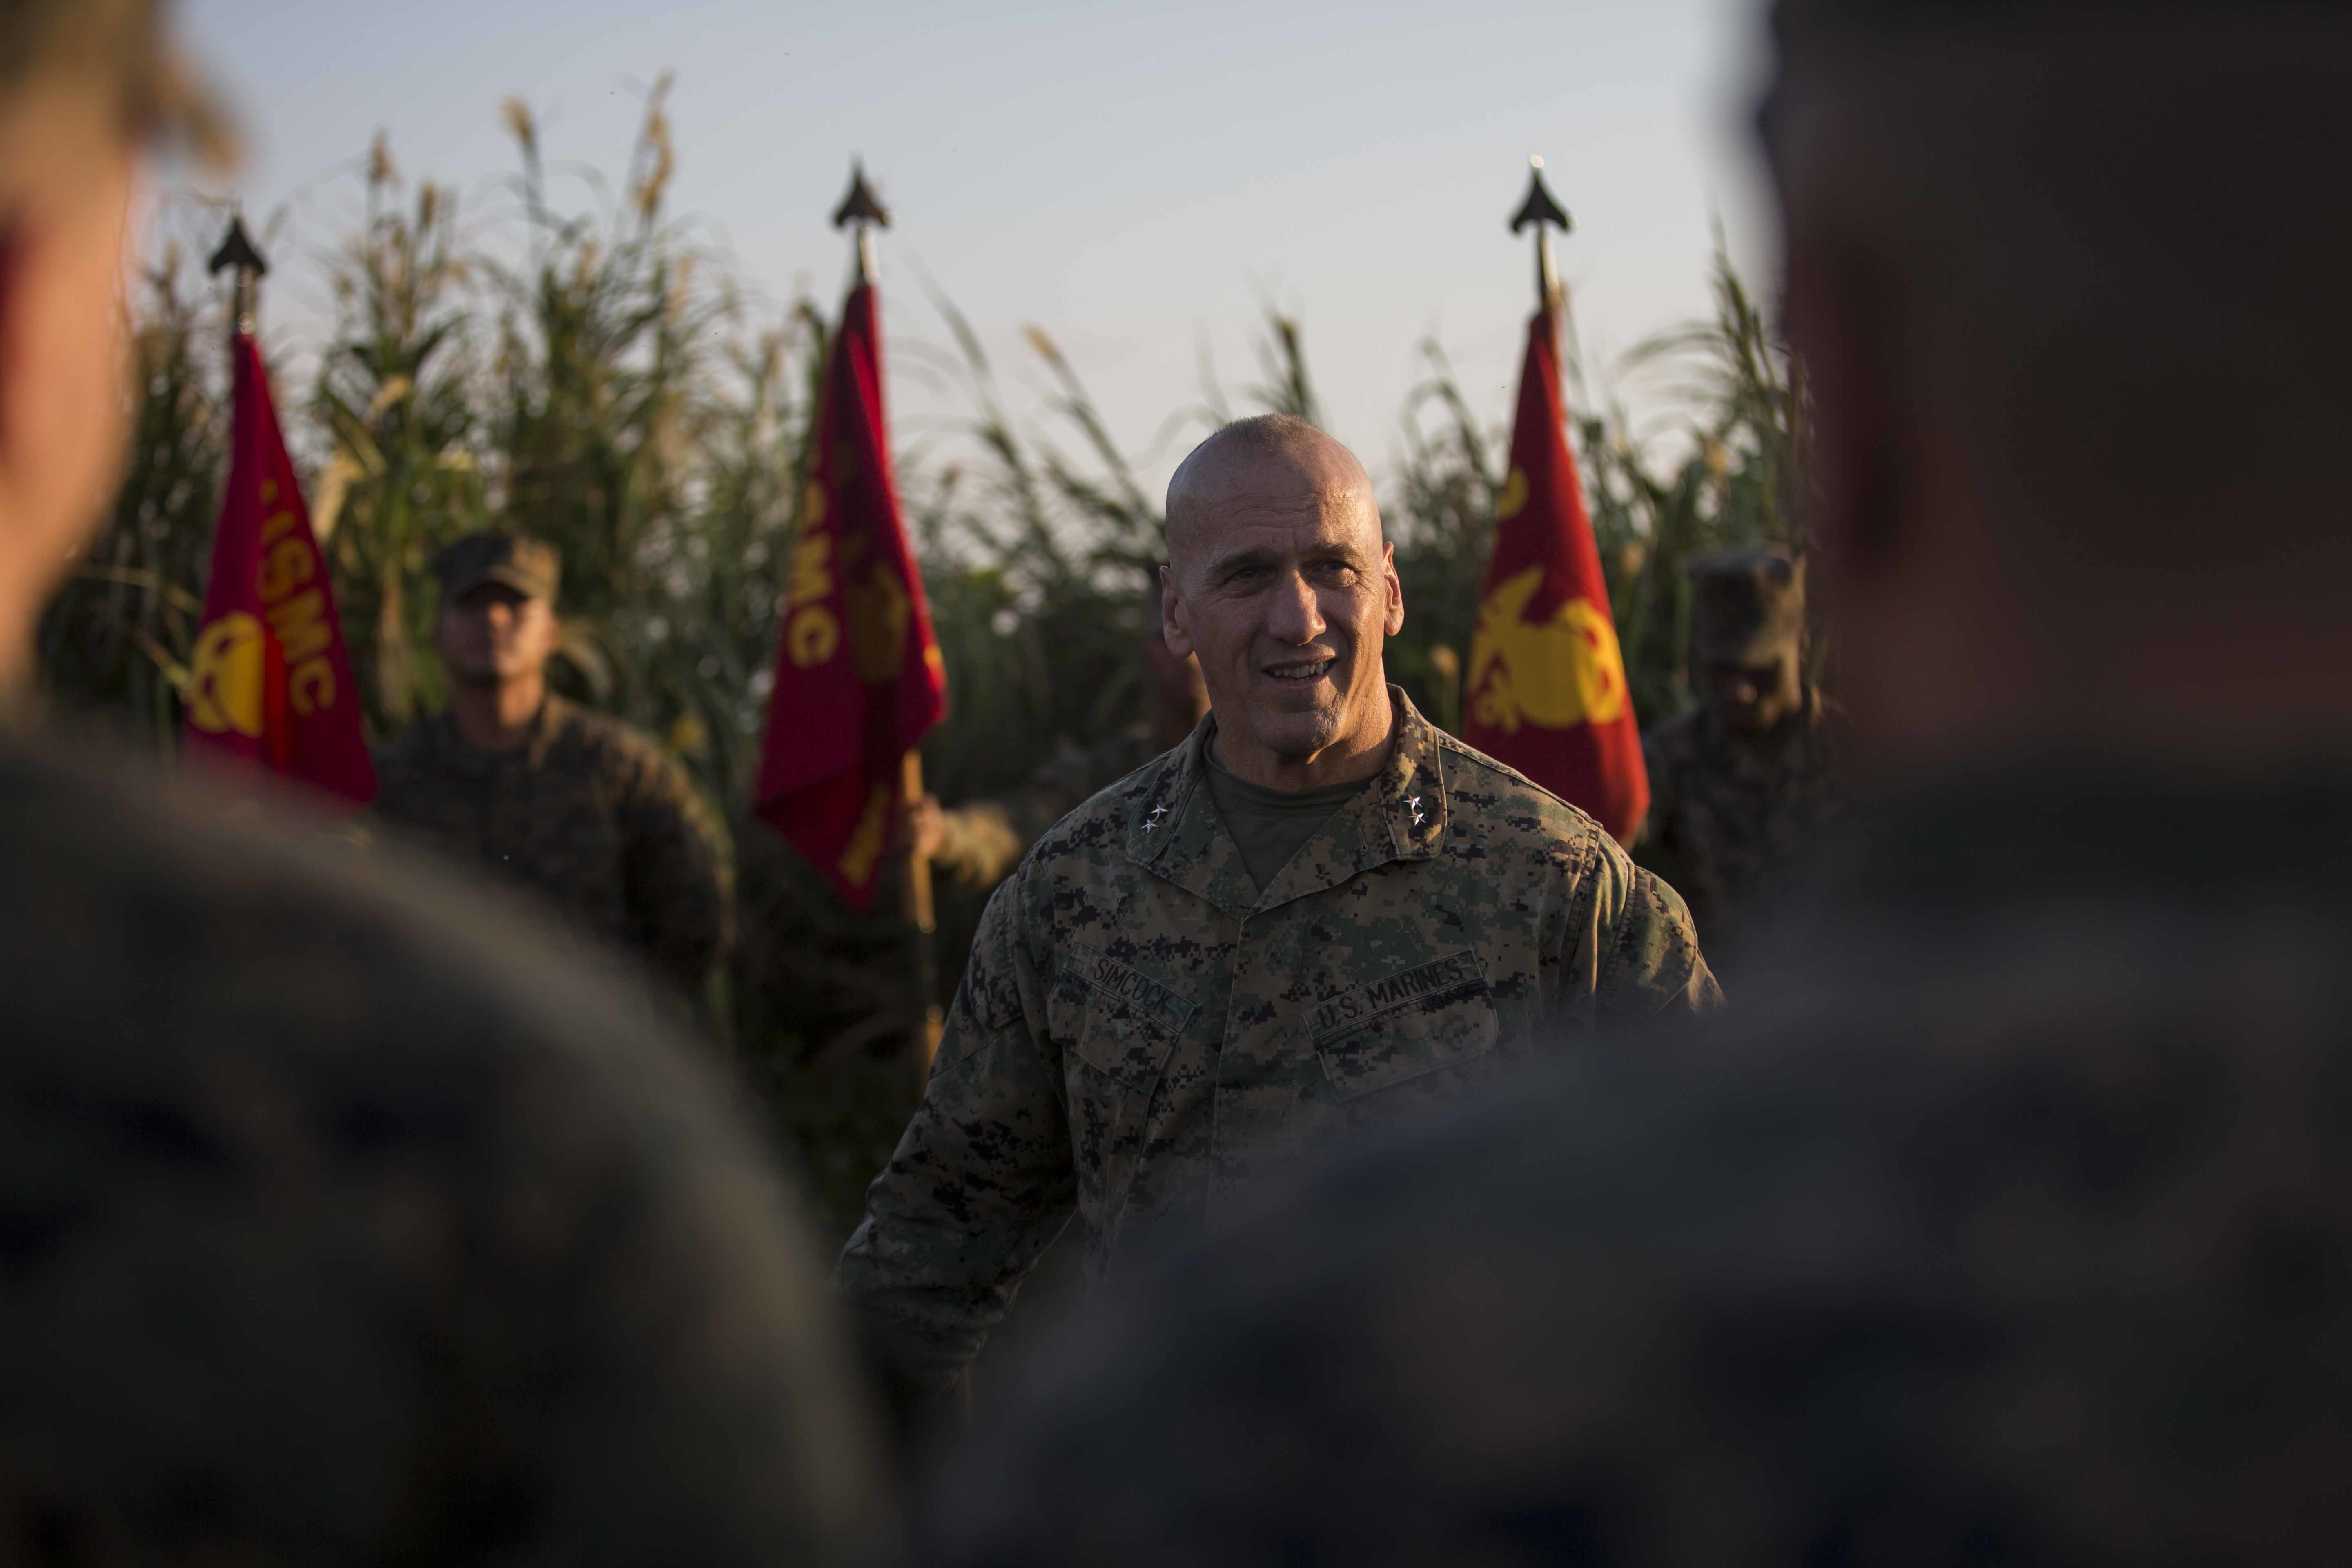 U.S. Marine Corps Maj. Gen. Richard L. Simcock II, commanding general of 3rd Marine Division, discusses with Marines and Sailors the significance of exercises like Blue Chromite 2017 to the greater Indo-Asia-Pacific region in Okinawa, Japan, Oct. 31, 2016. US Marine Corps photo.